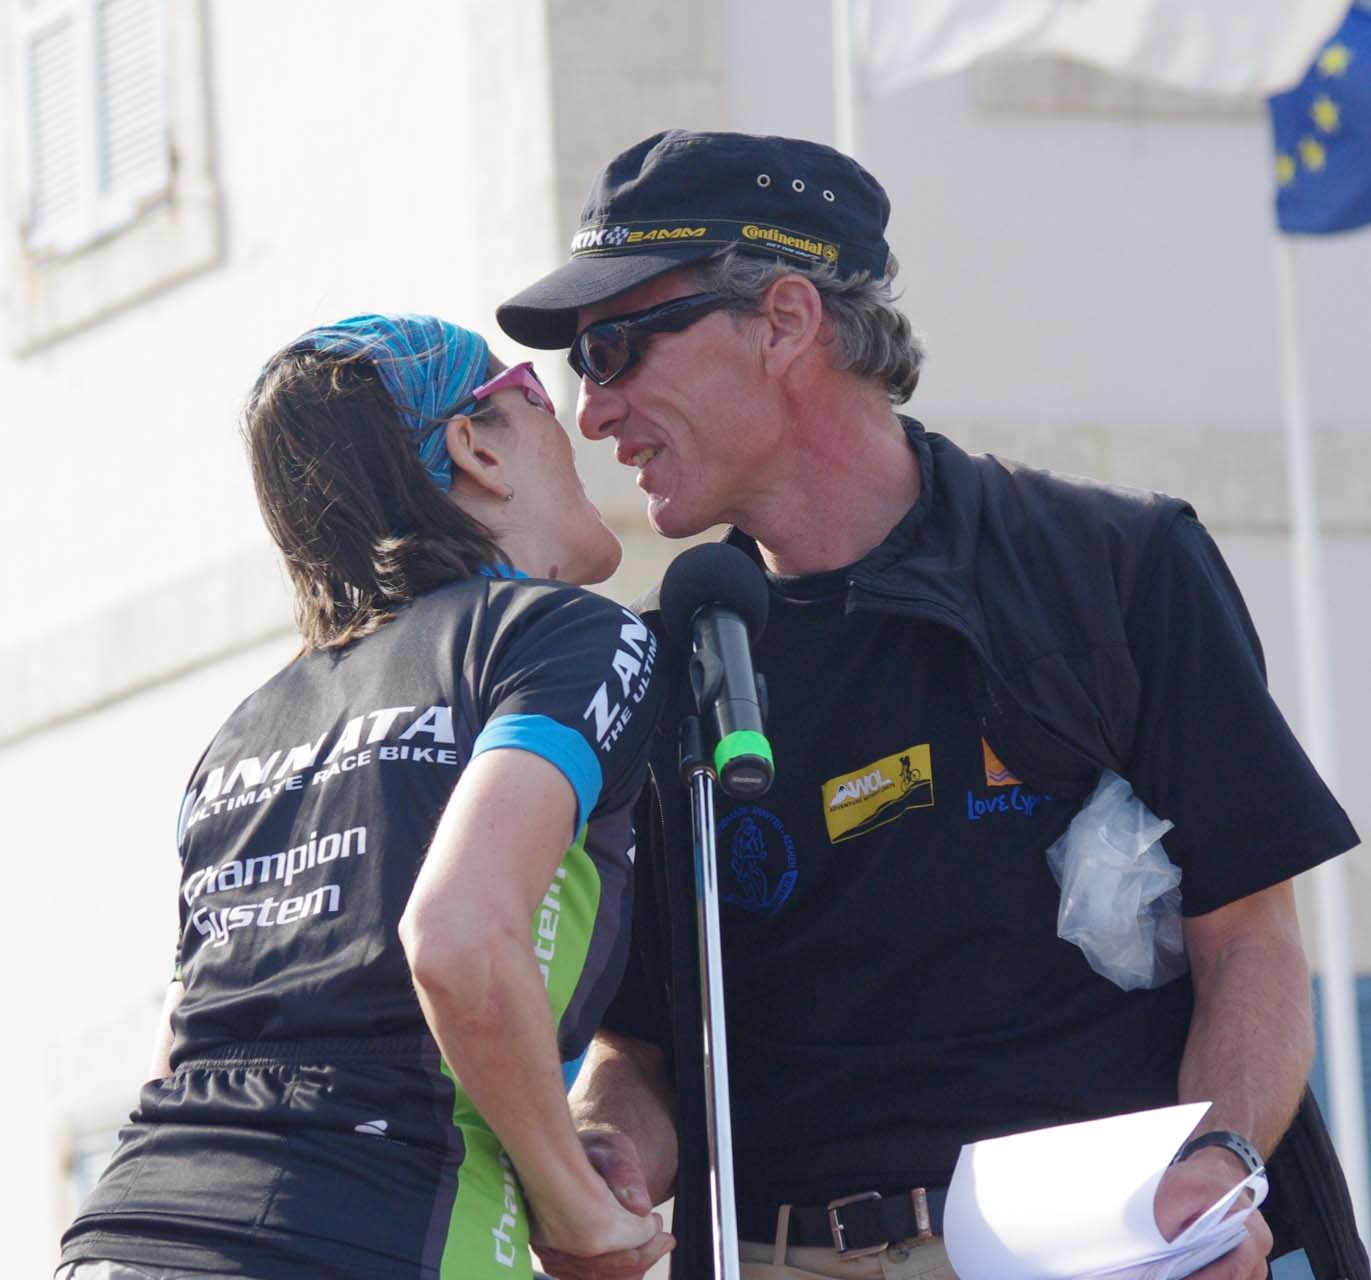 Christine collecting kisses from Thomas Wegm?ller. ? Jonas Bruffaerts